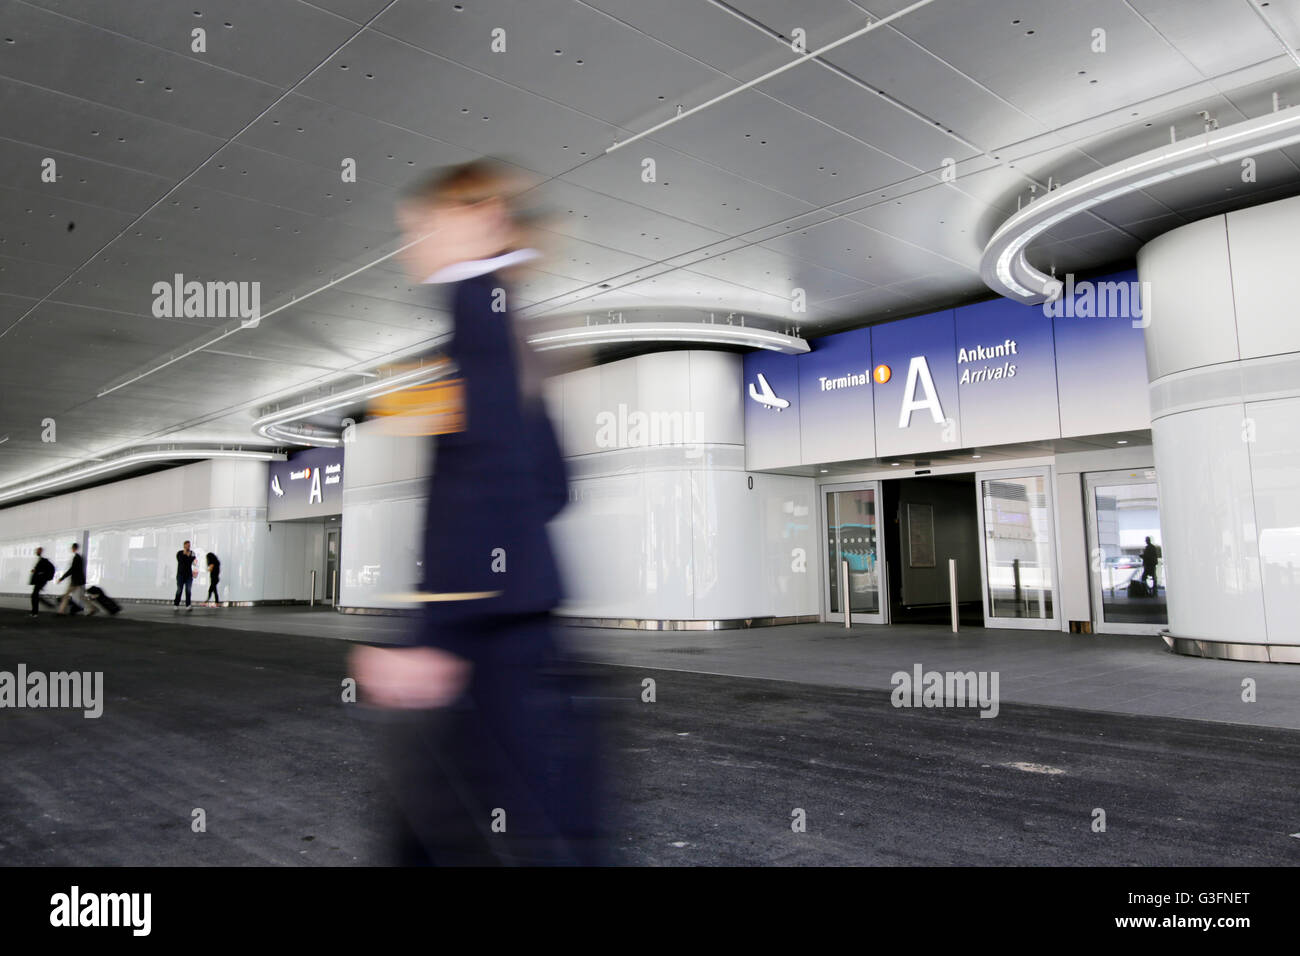 The newly designed facade of the arrival area at terminal 1 of the airport in Frankfurt/Main, GErmany, 9 June 2016. - Stock Image